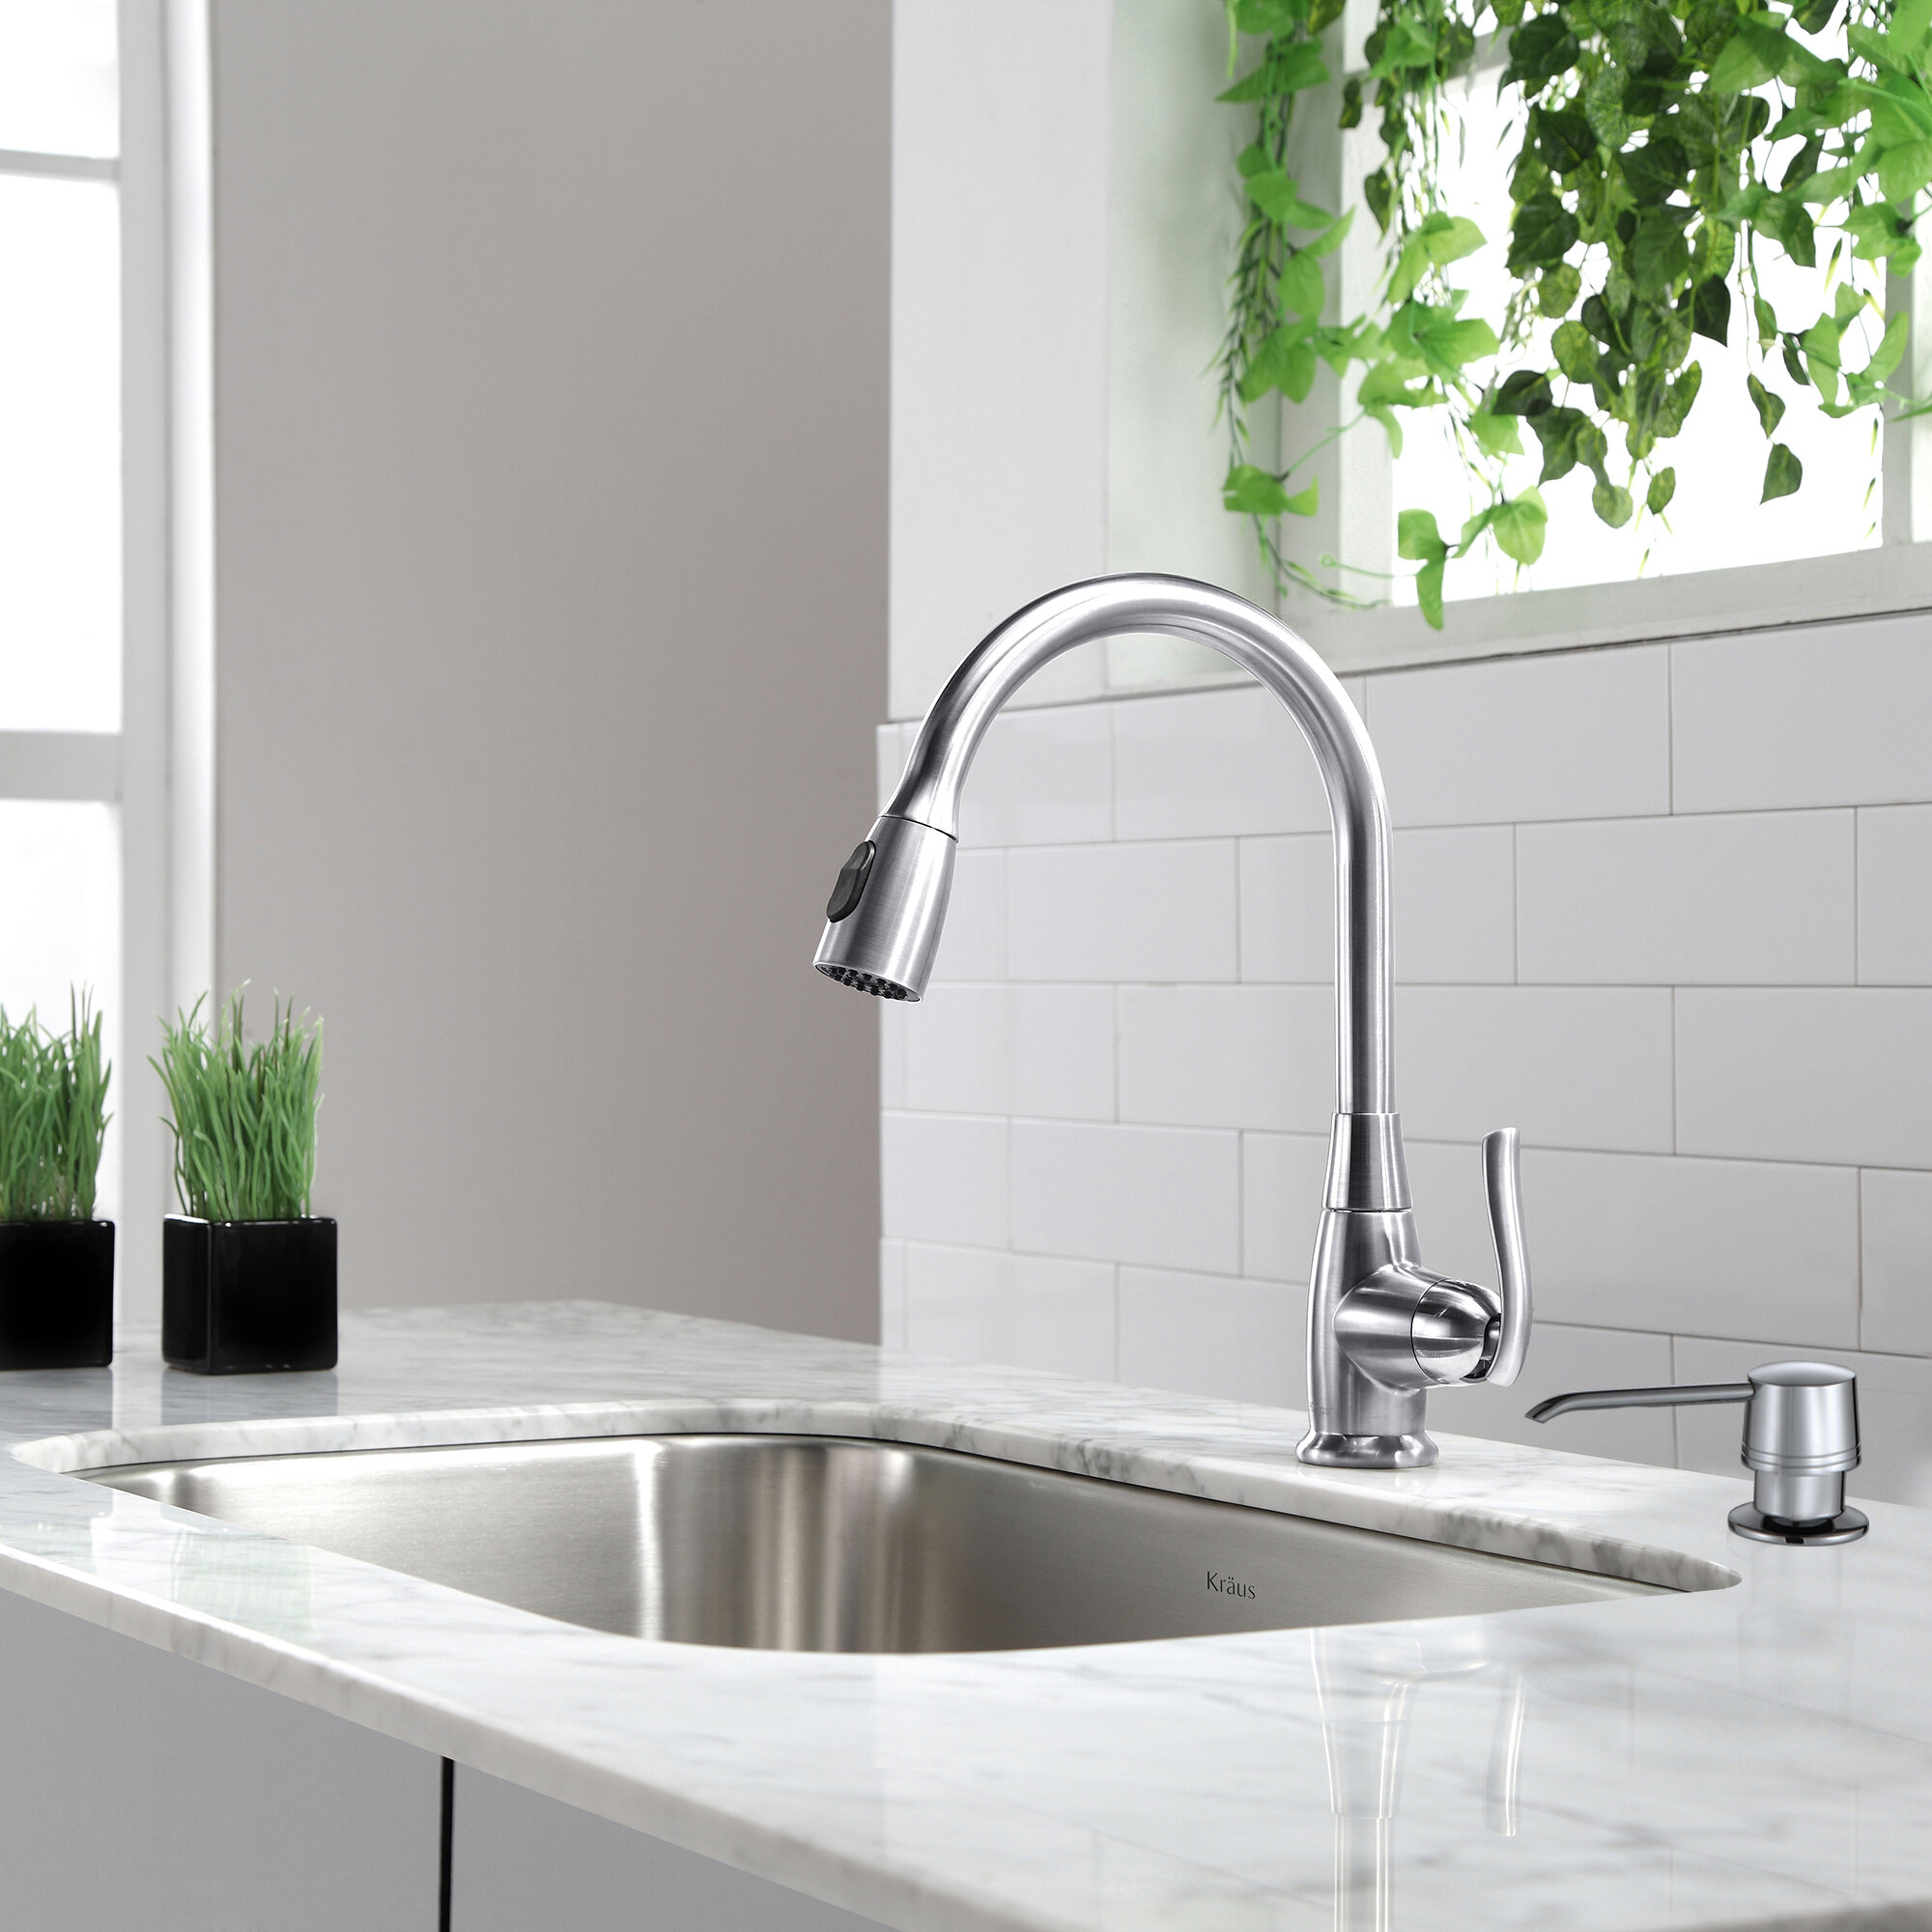 com bronze kitchen parq faucet faucets bridge oiled rubbed with kitchenzo oil kohler of fresh handle inspirational